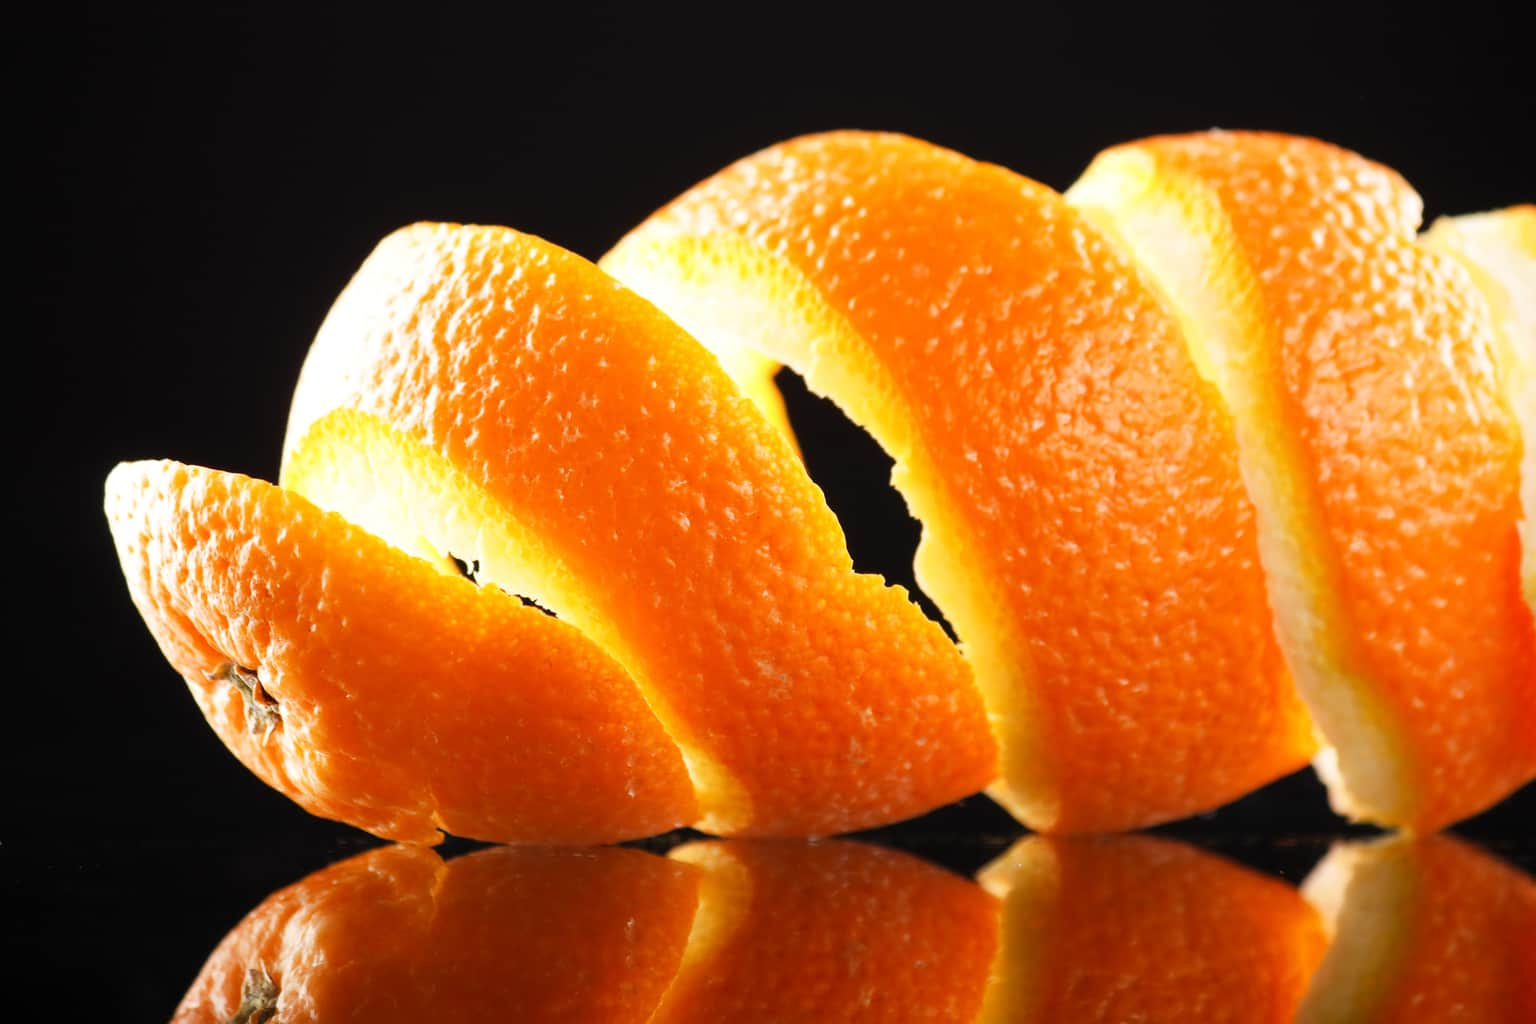 Orange peel can help reduce colon cancers?